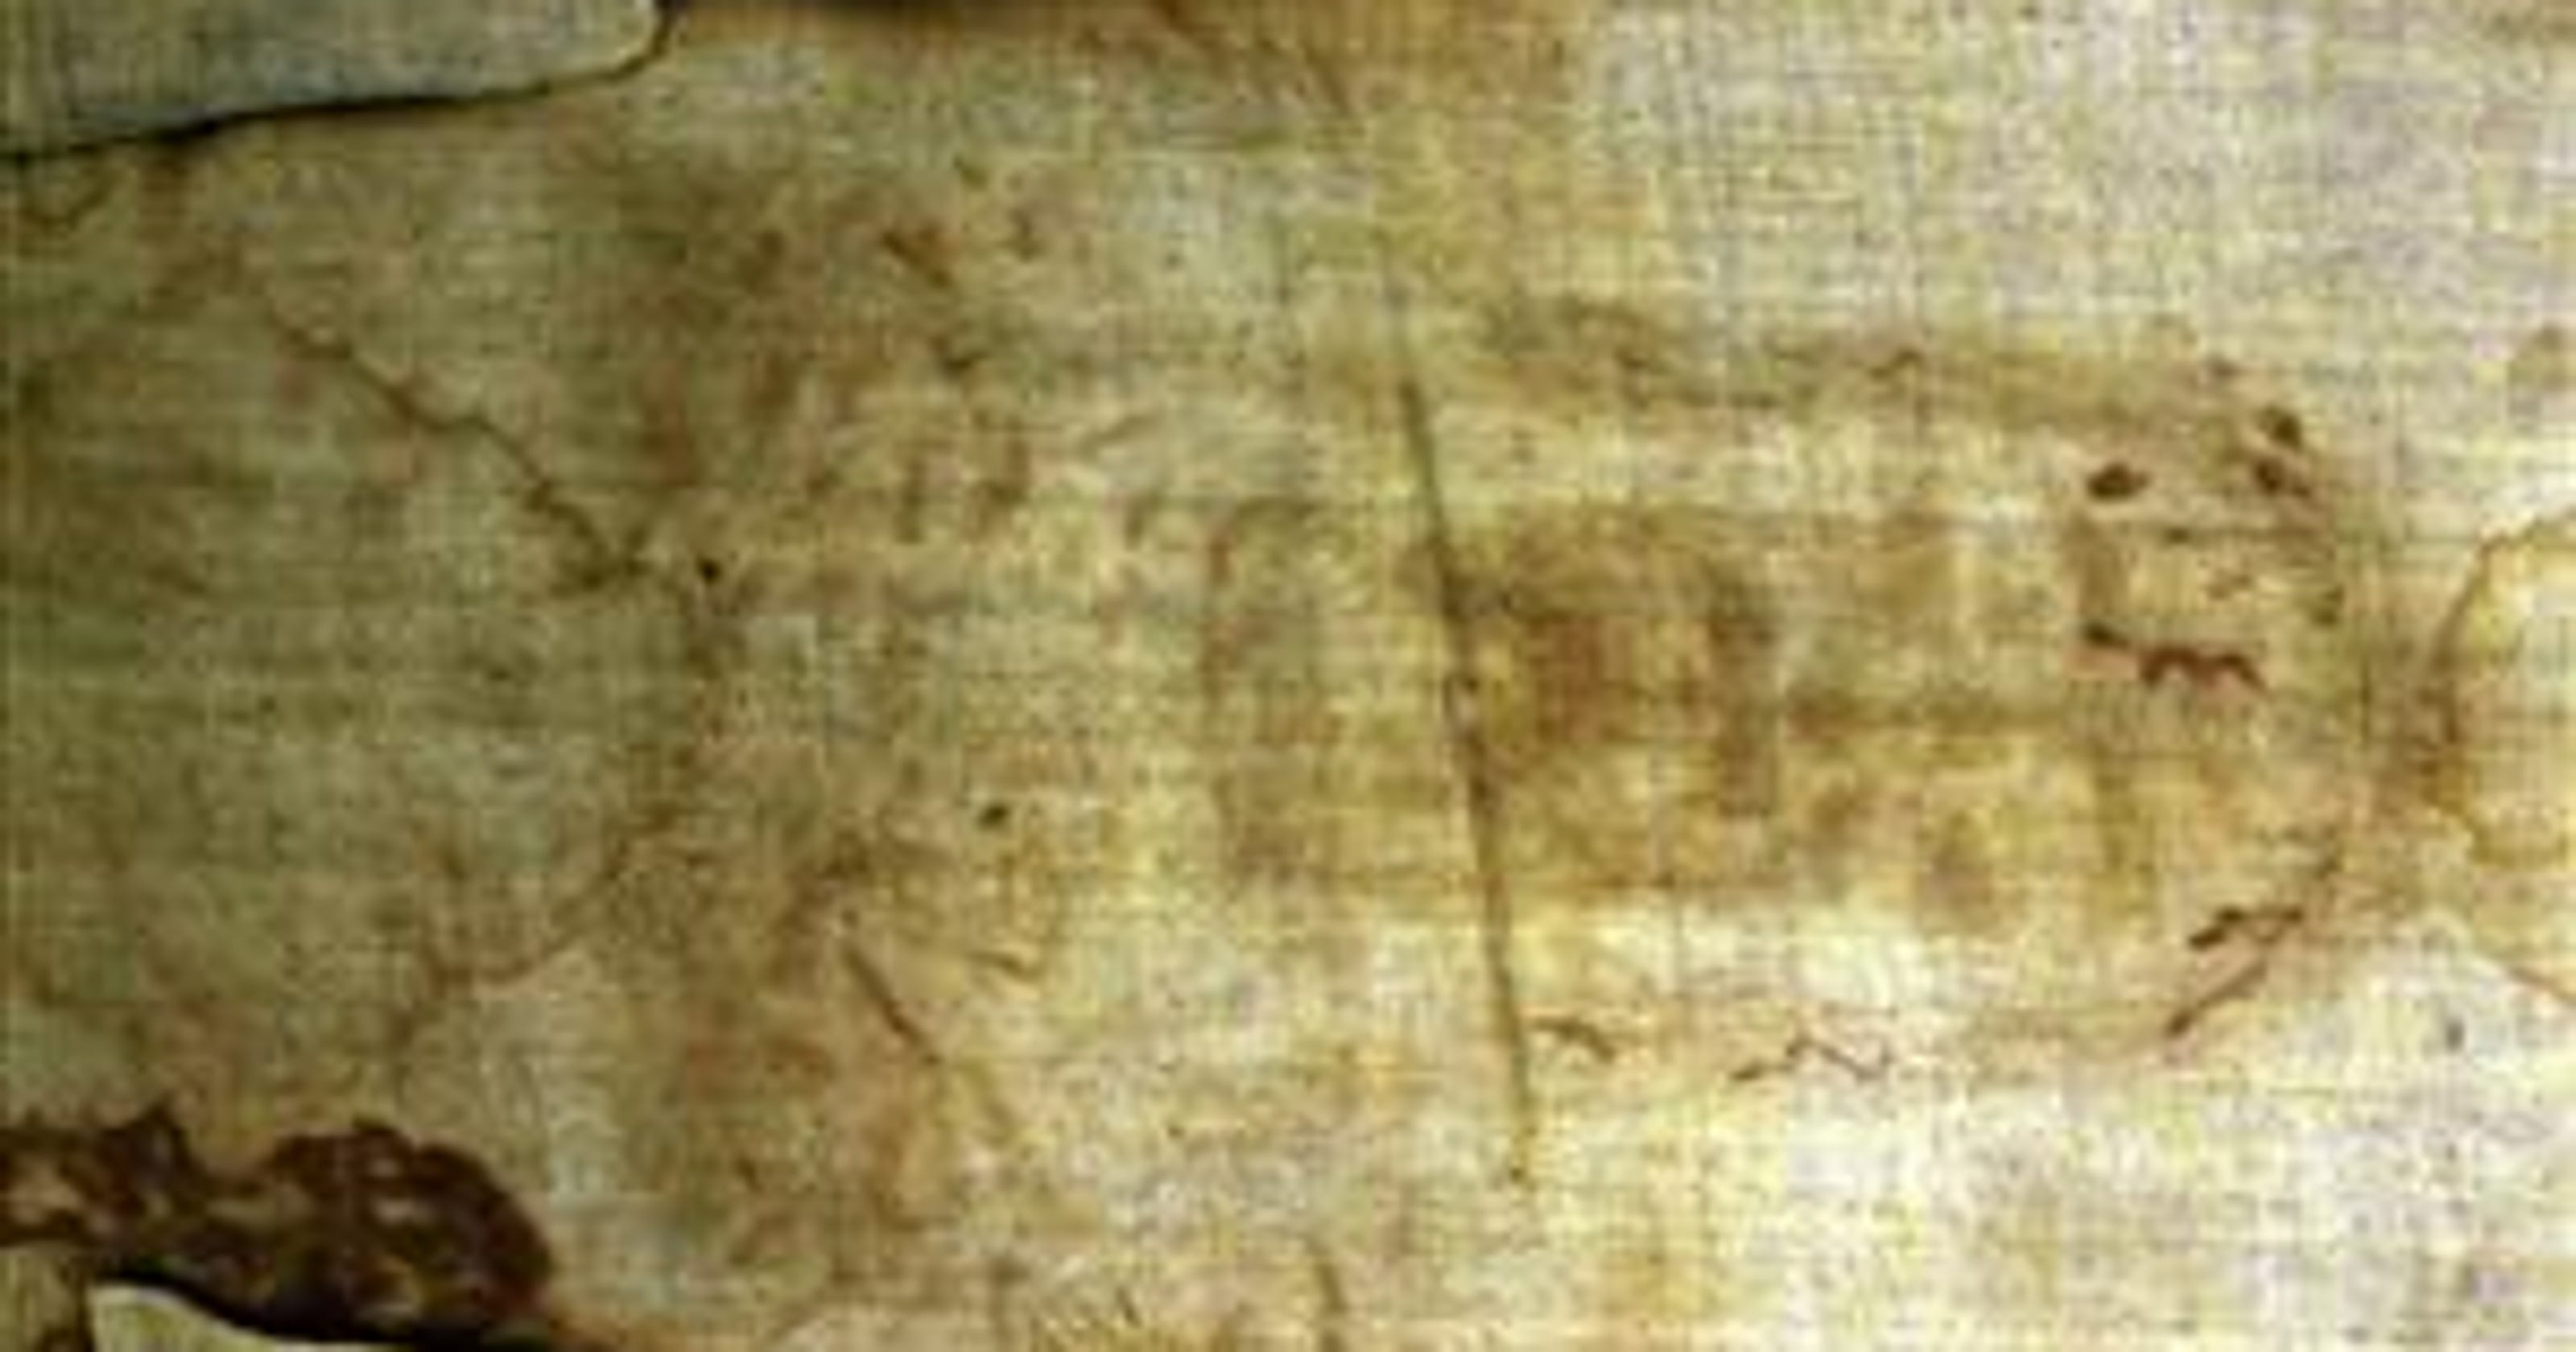 radiocarbon dating and the shroud of turin debate